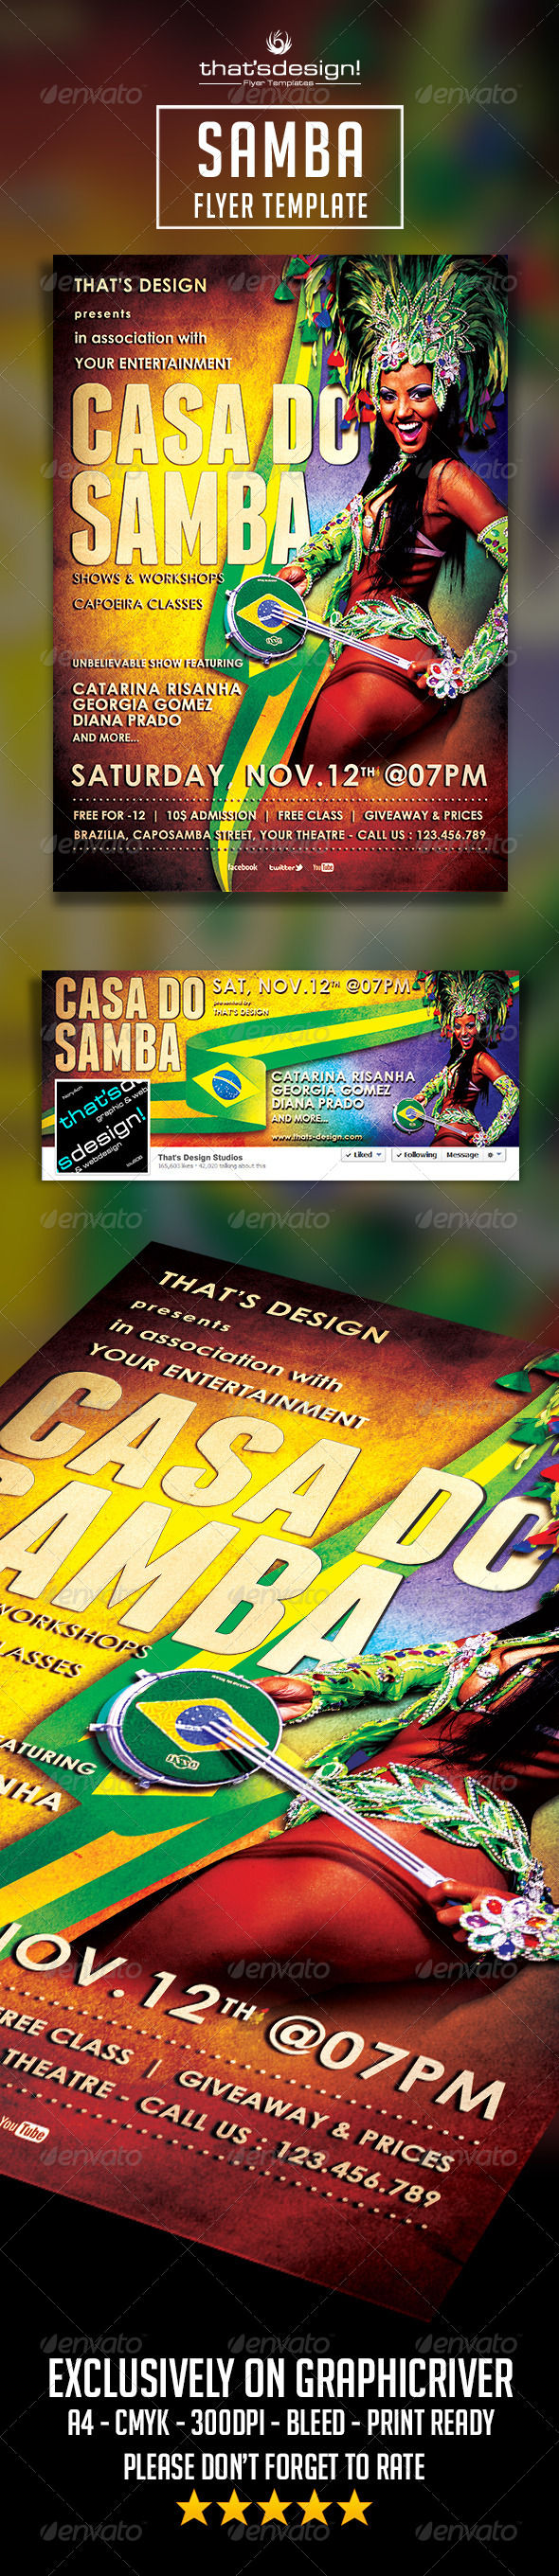 Samba Flyer Template - Print Templates